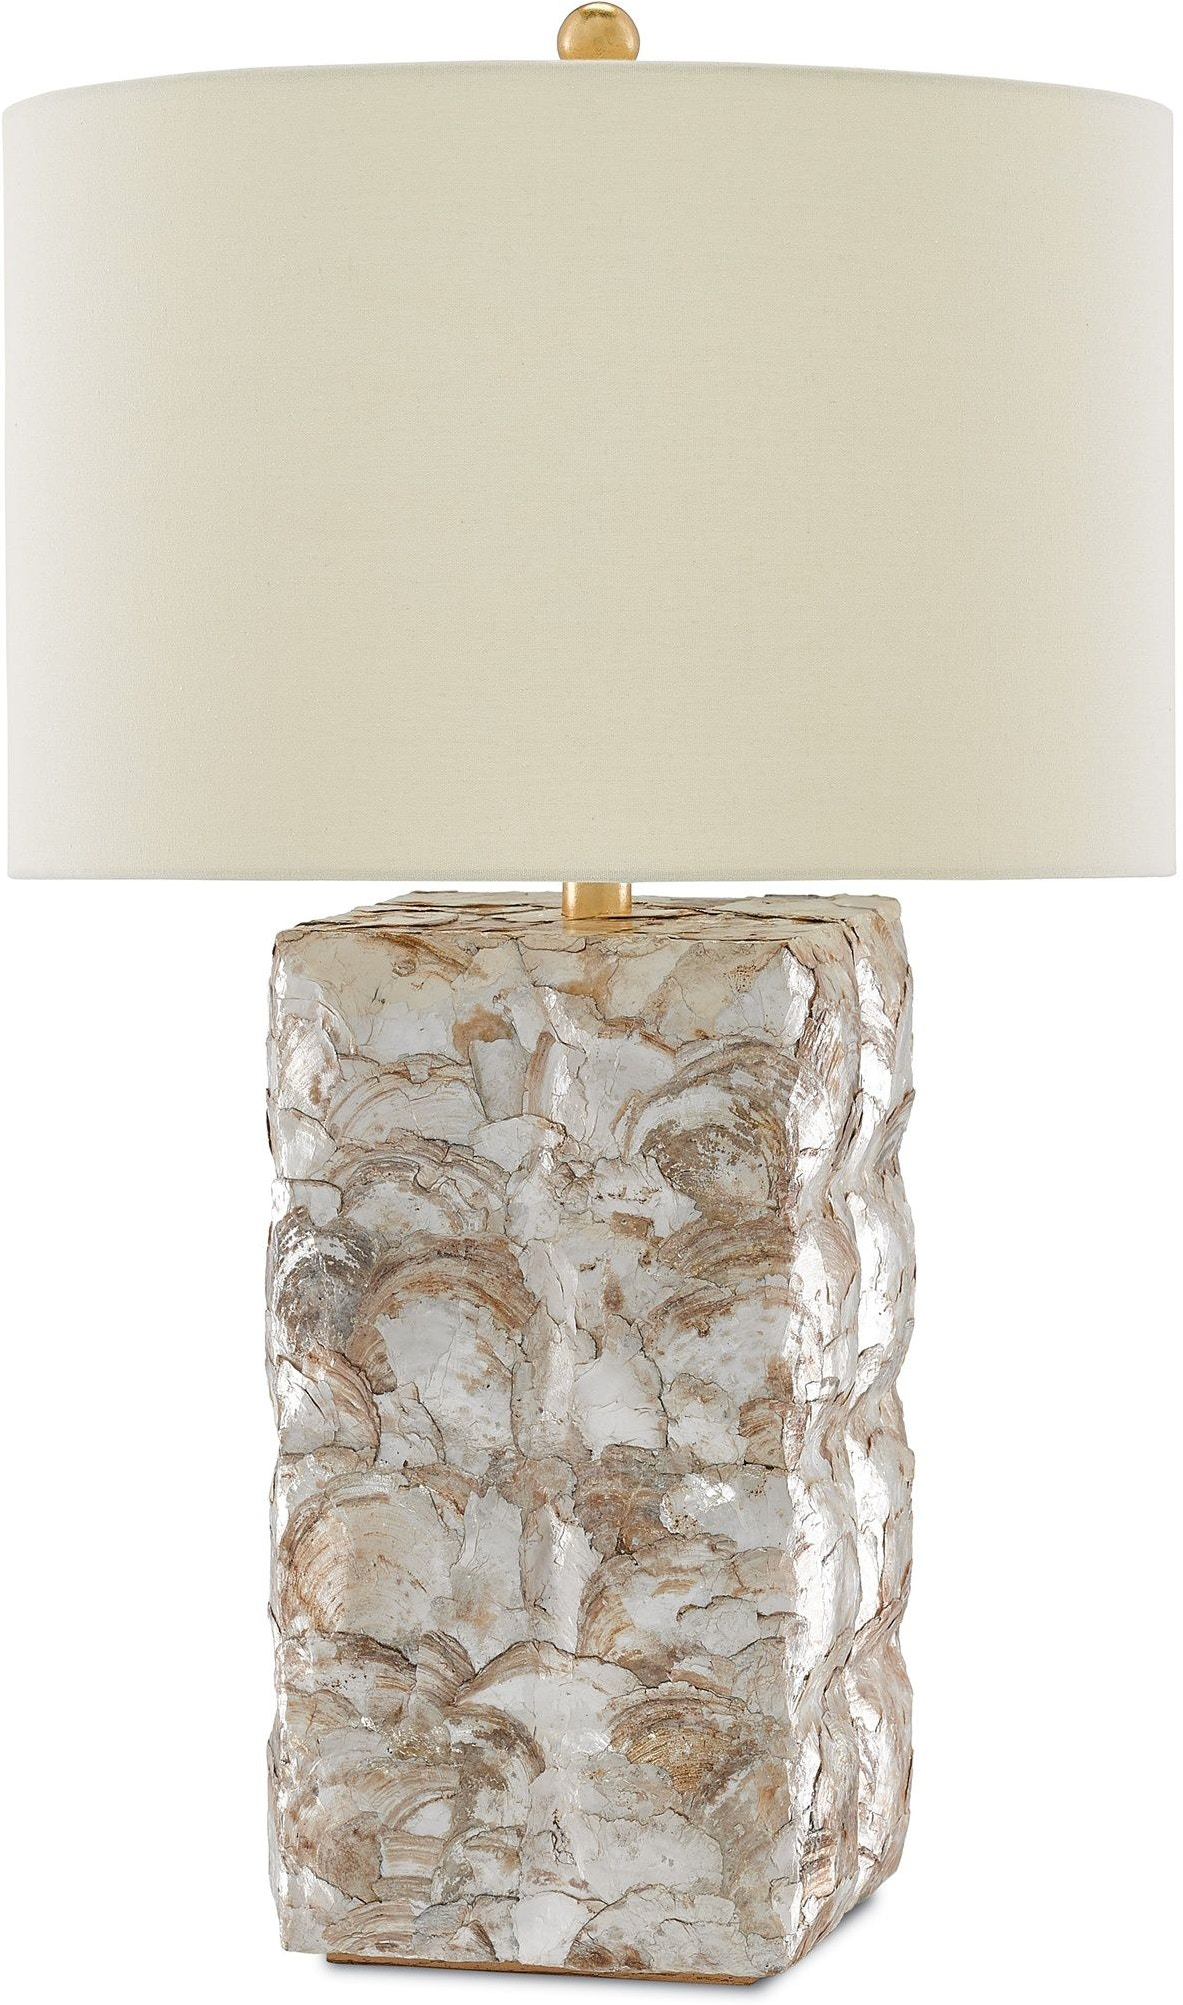 Currey And Company Lamps And Lighting La Peregrina Table Lamp 6000 0134 Matter Brothers Furniture